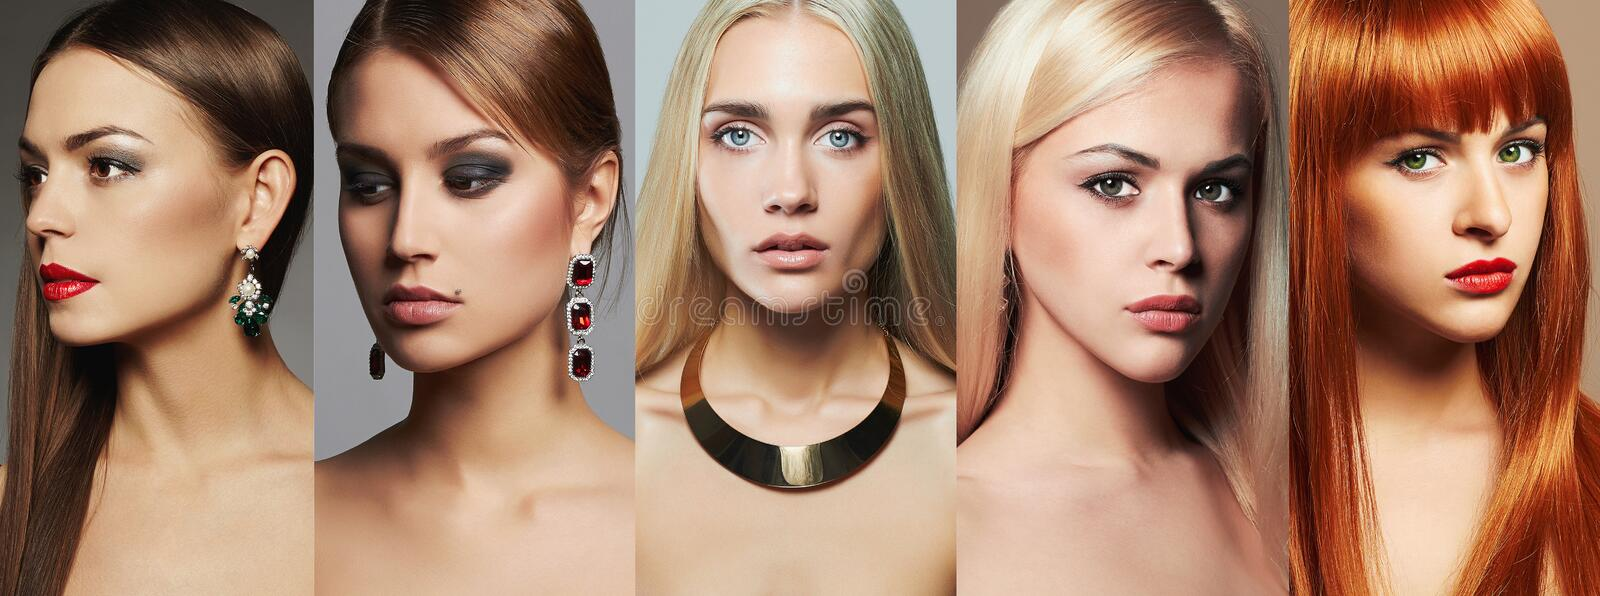 Beauty collage.Makeup,lipstick and eye shadow. Different beautiful girls stock image